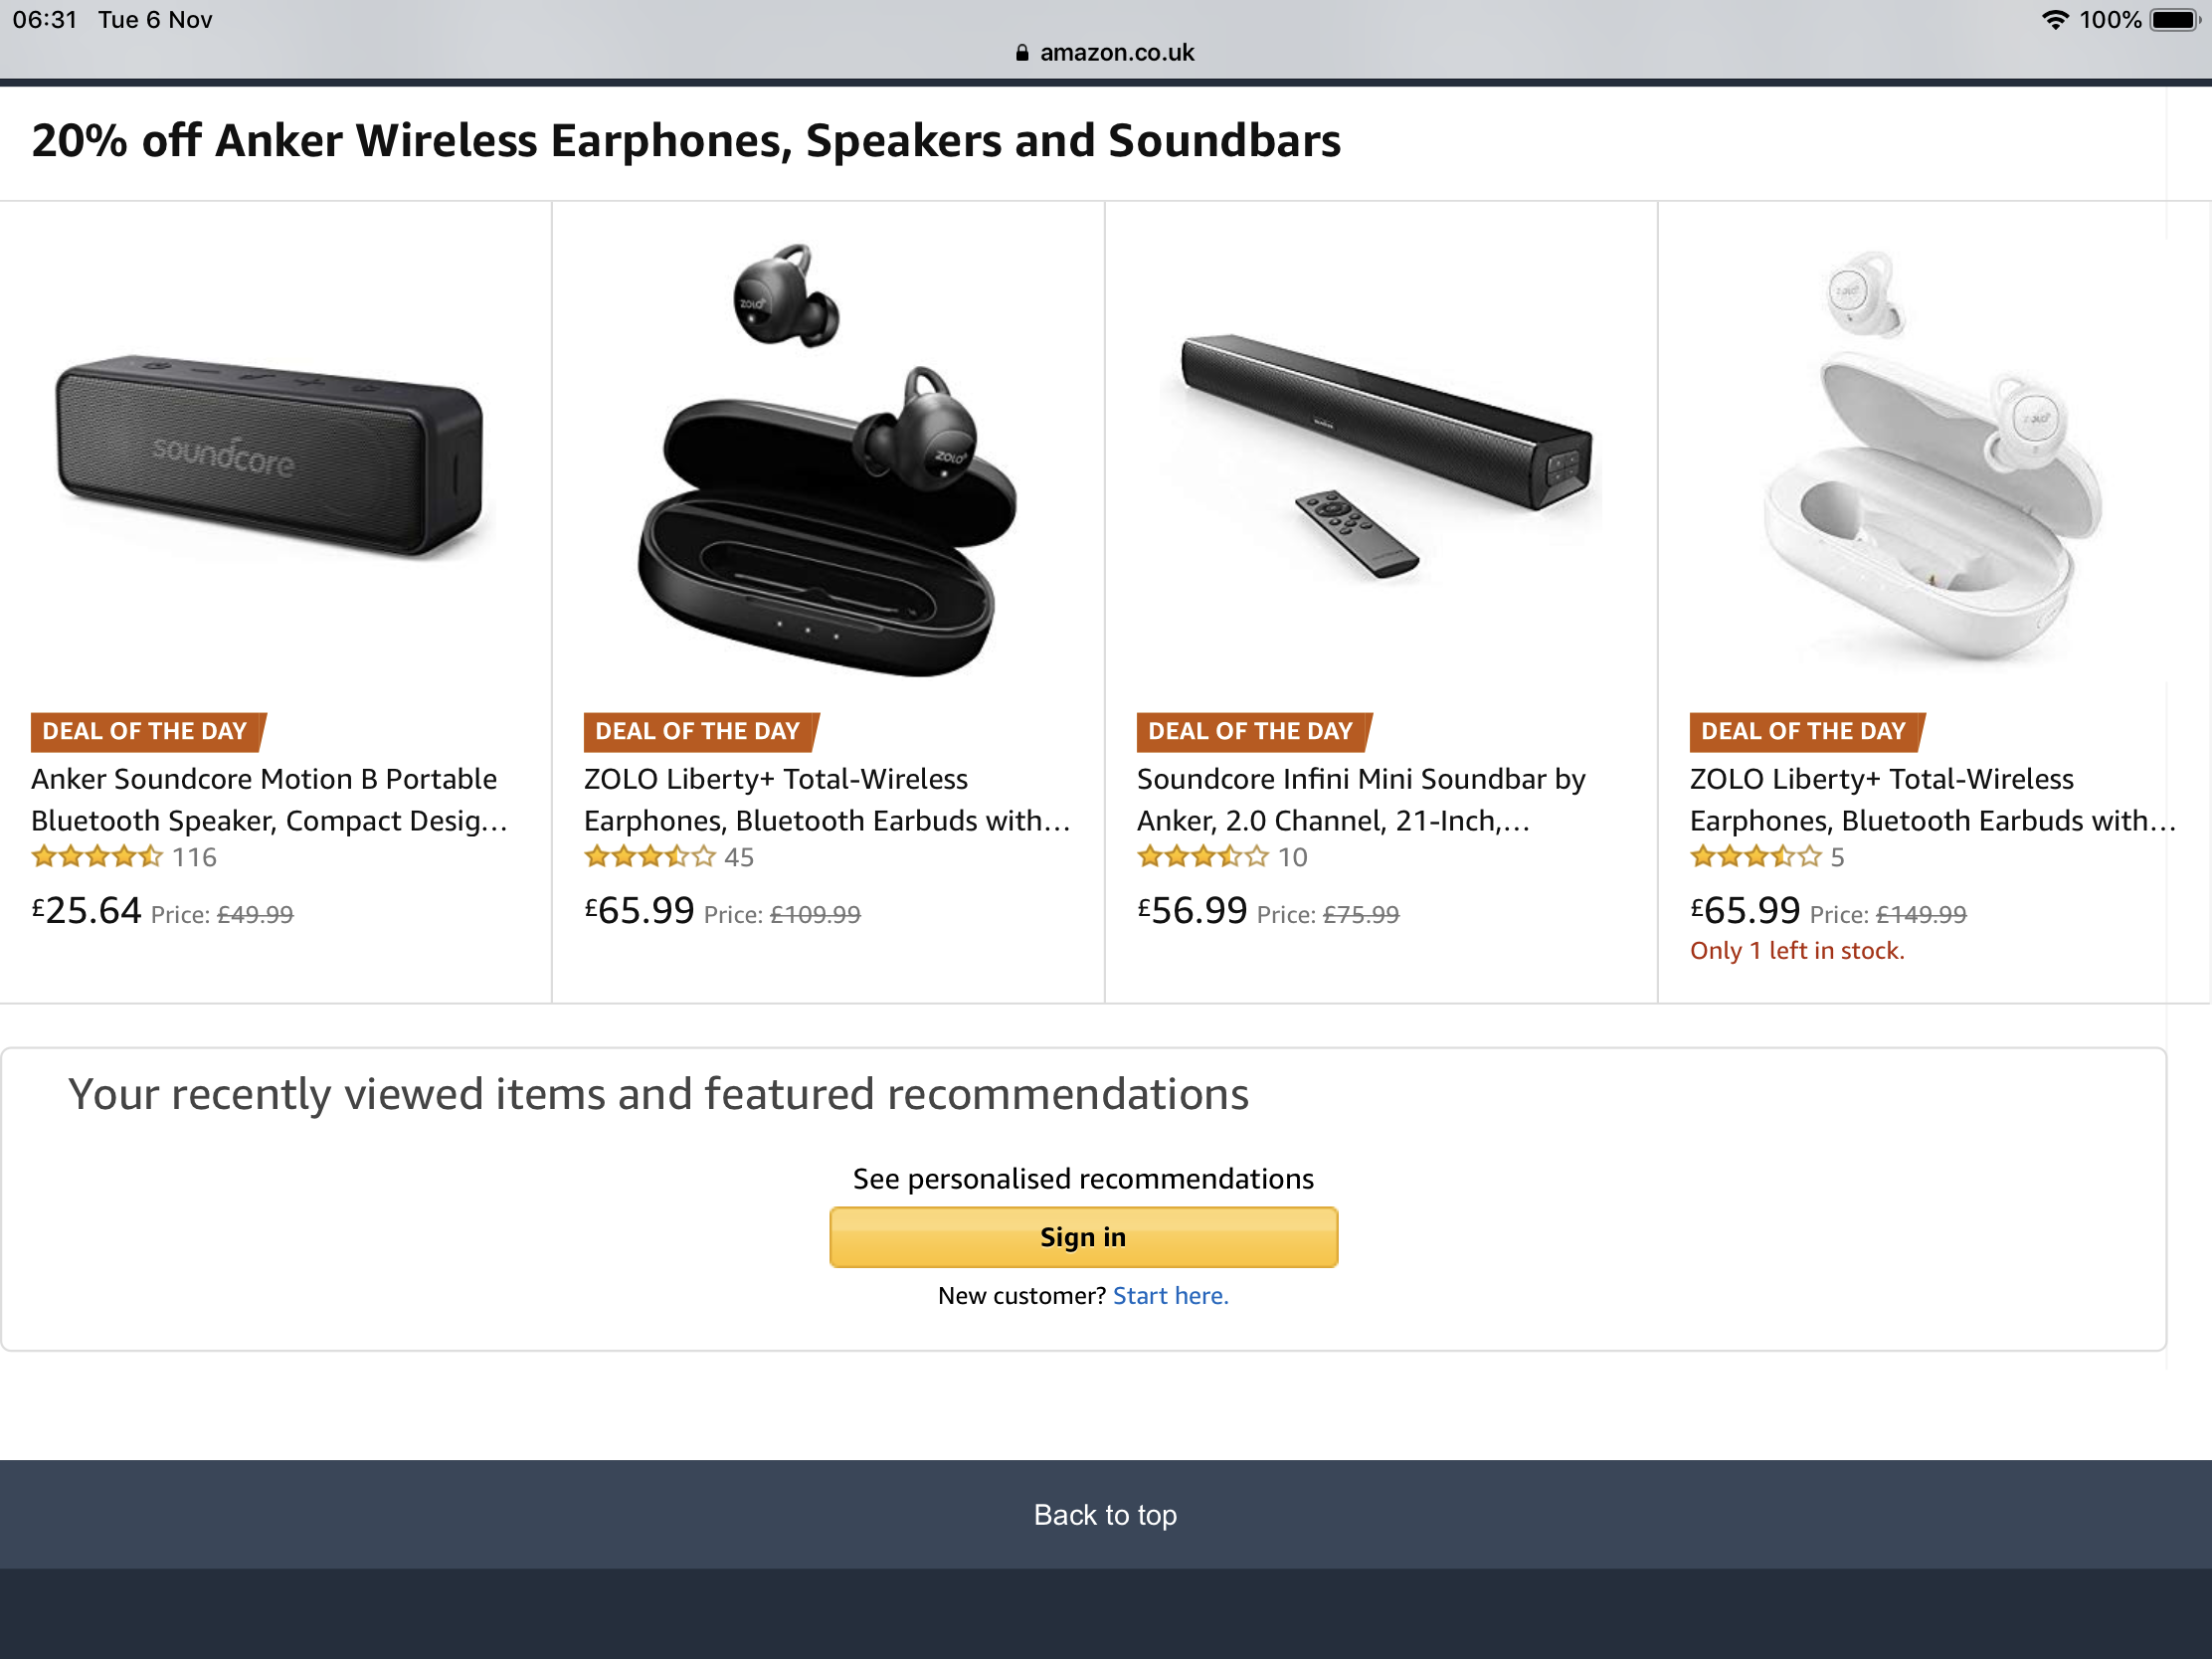 2699f2bc7e1 Amazon UK SoundCore / Zolo Deals - up to 30% Off - 2 Days - Deals ...